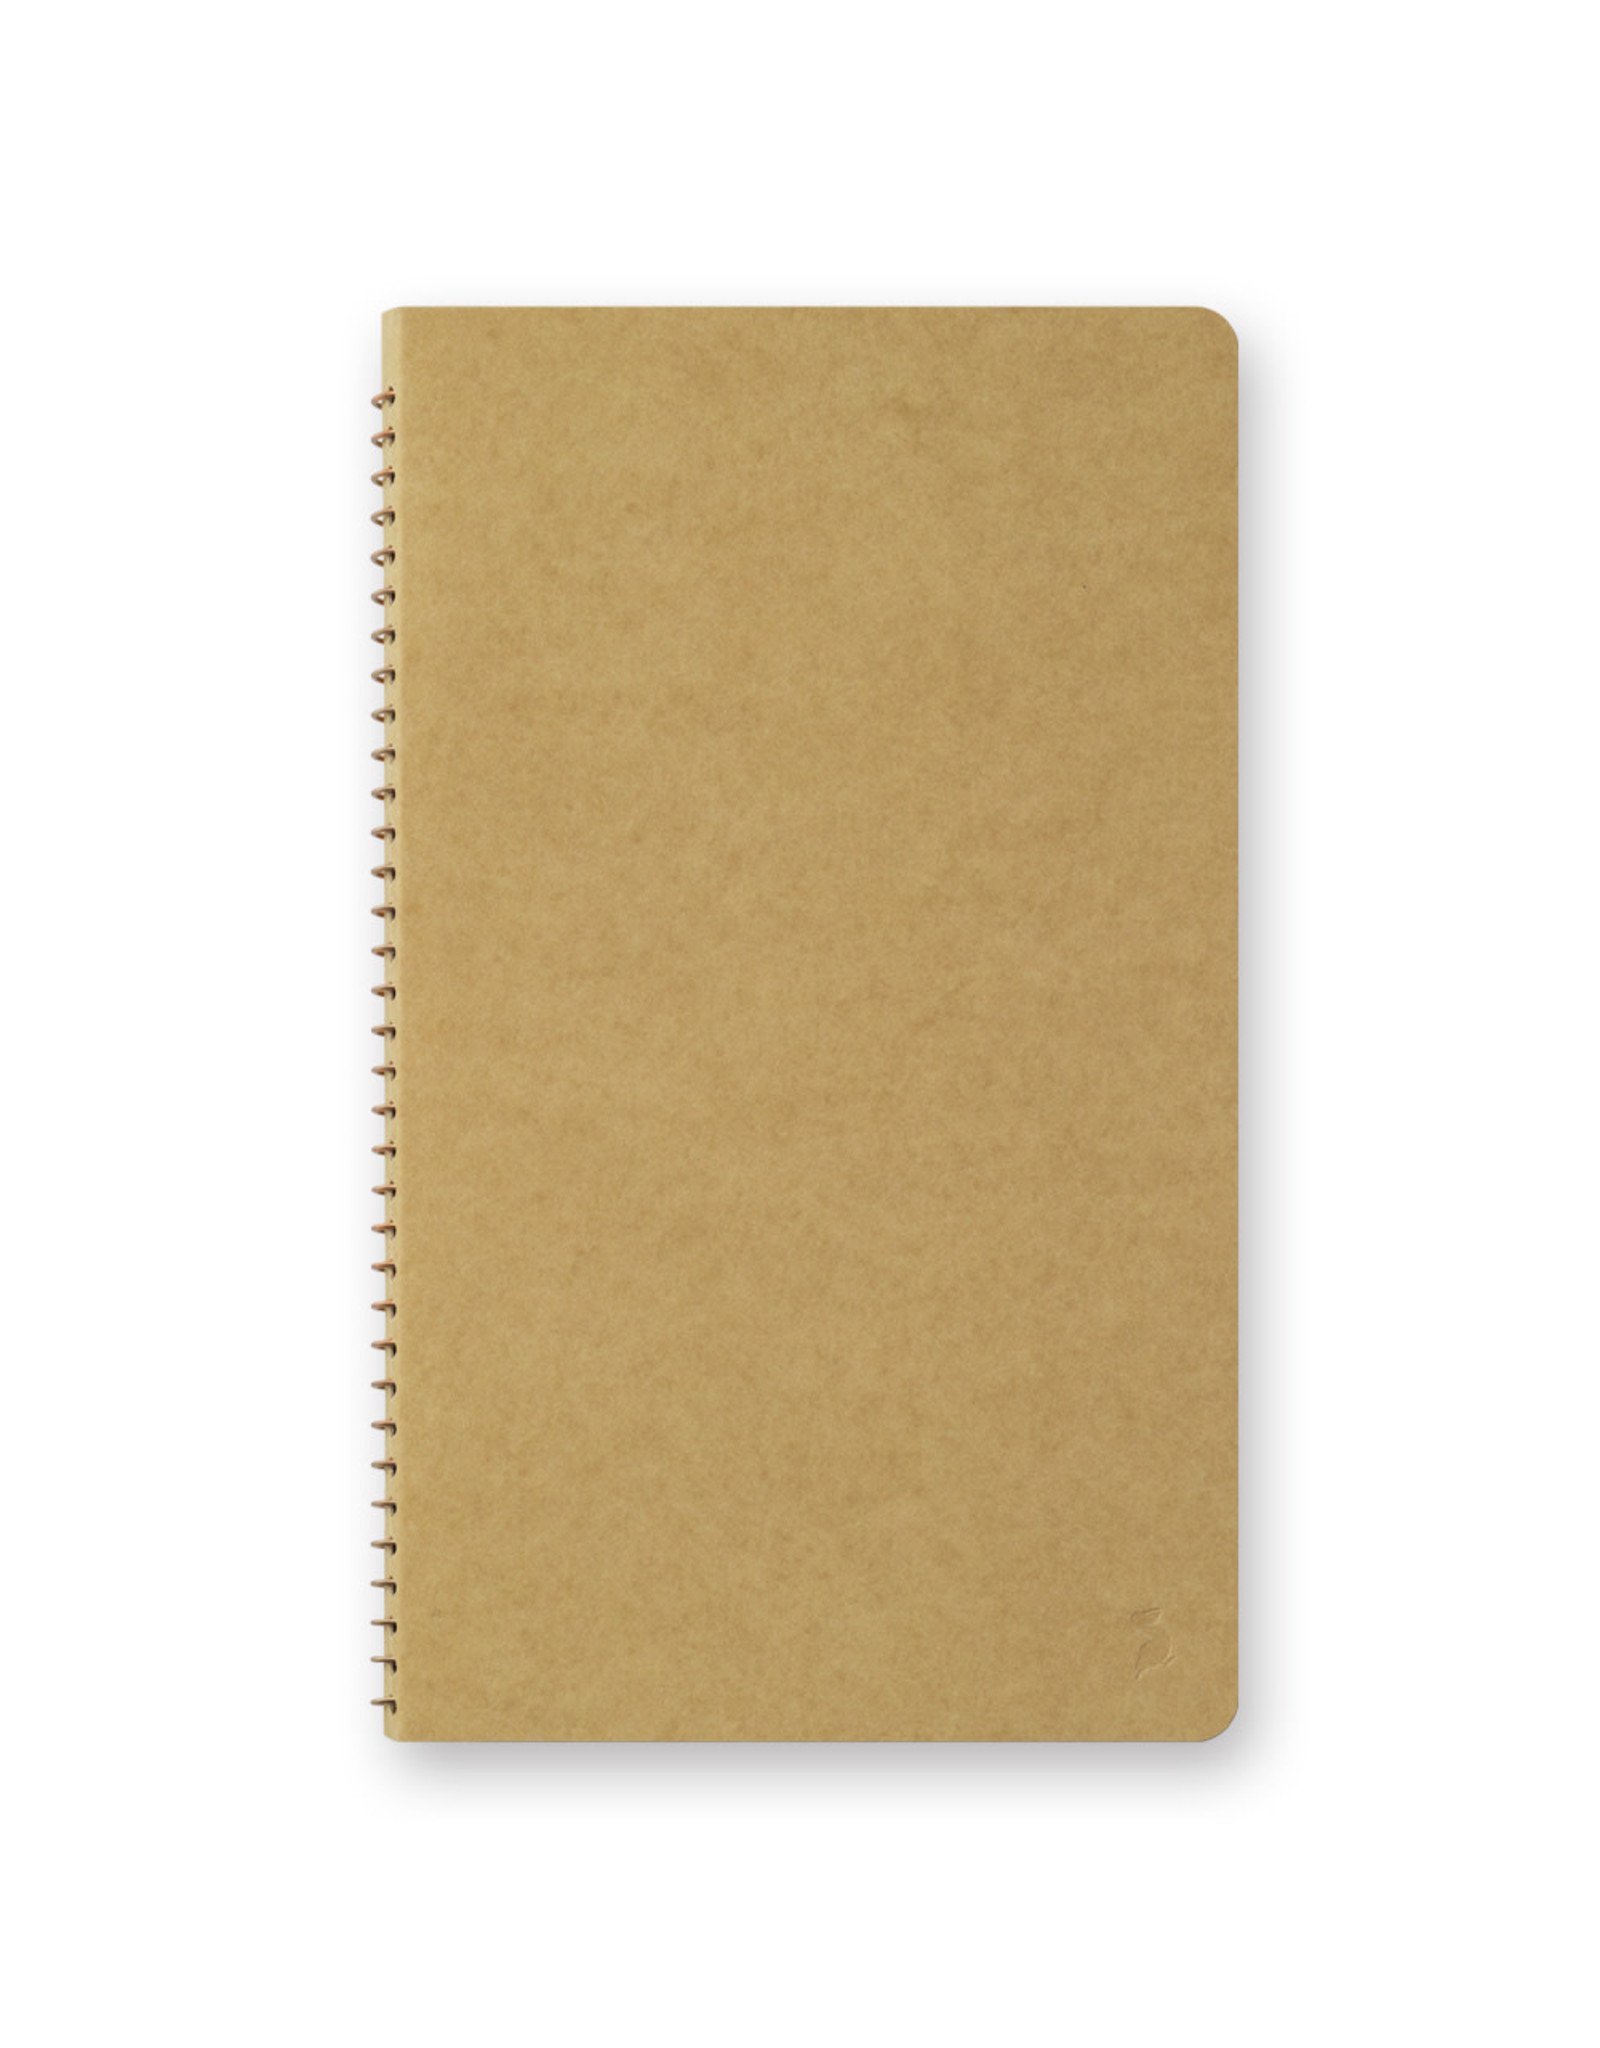 Traveler's Company SPIRAL RING NOTEBOOK A5 SLIM CARD FILE 12 SHEETS (72 POCKETS)